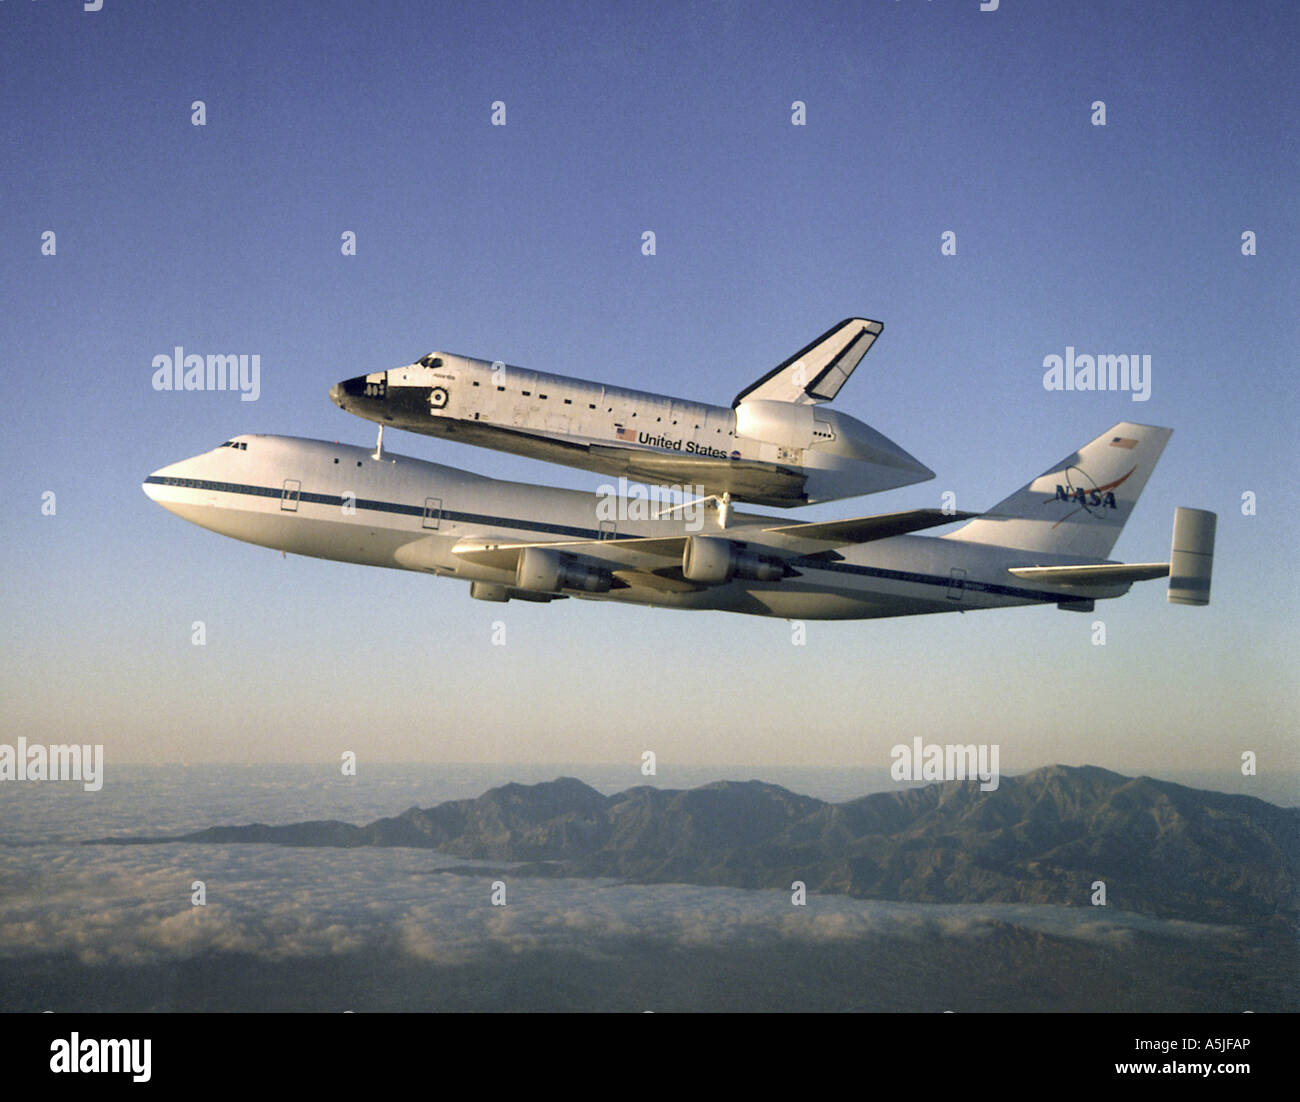 Shuttle Atlantis returning to Kennedy Space Center. Date: 09/01/1998 - Stock Image